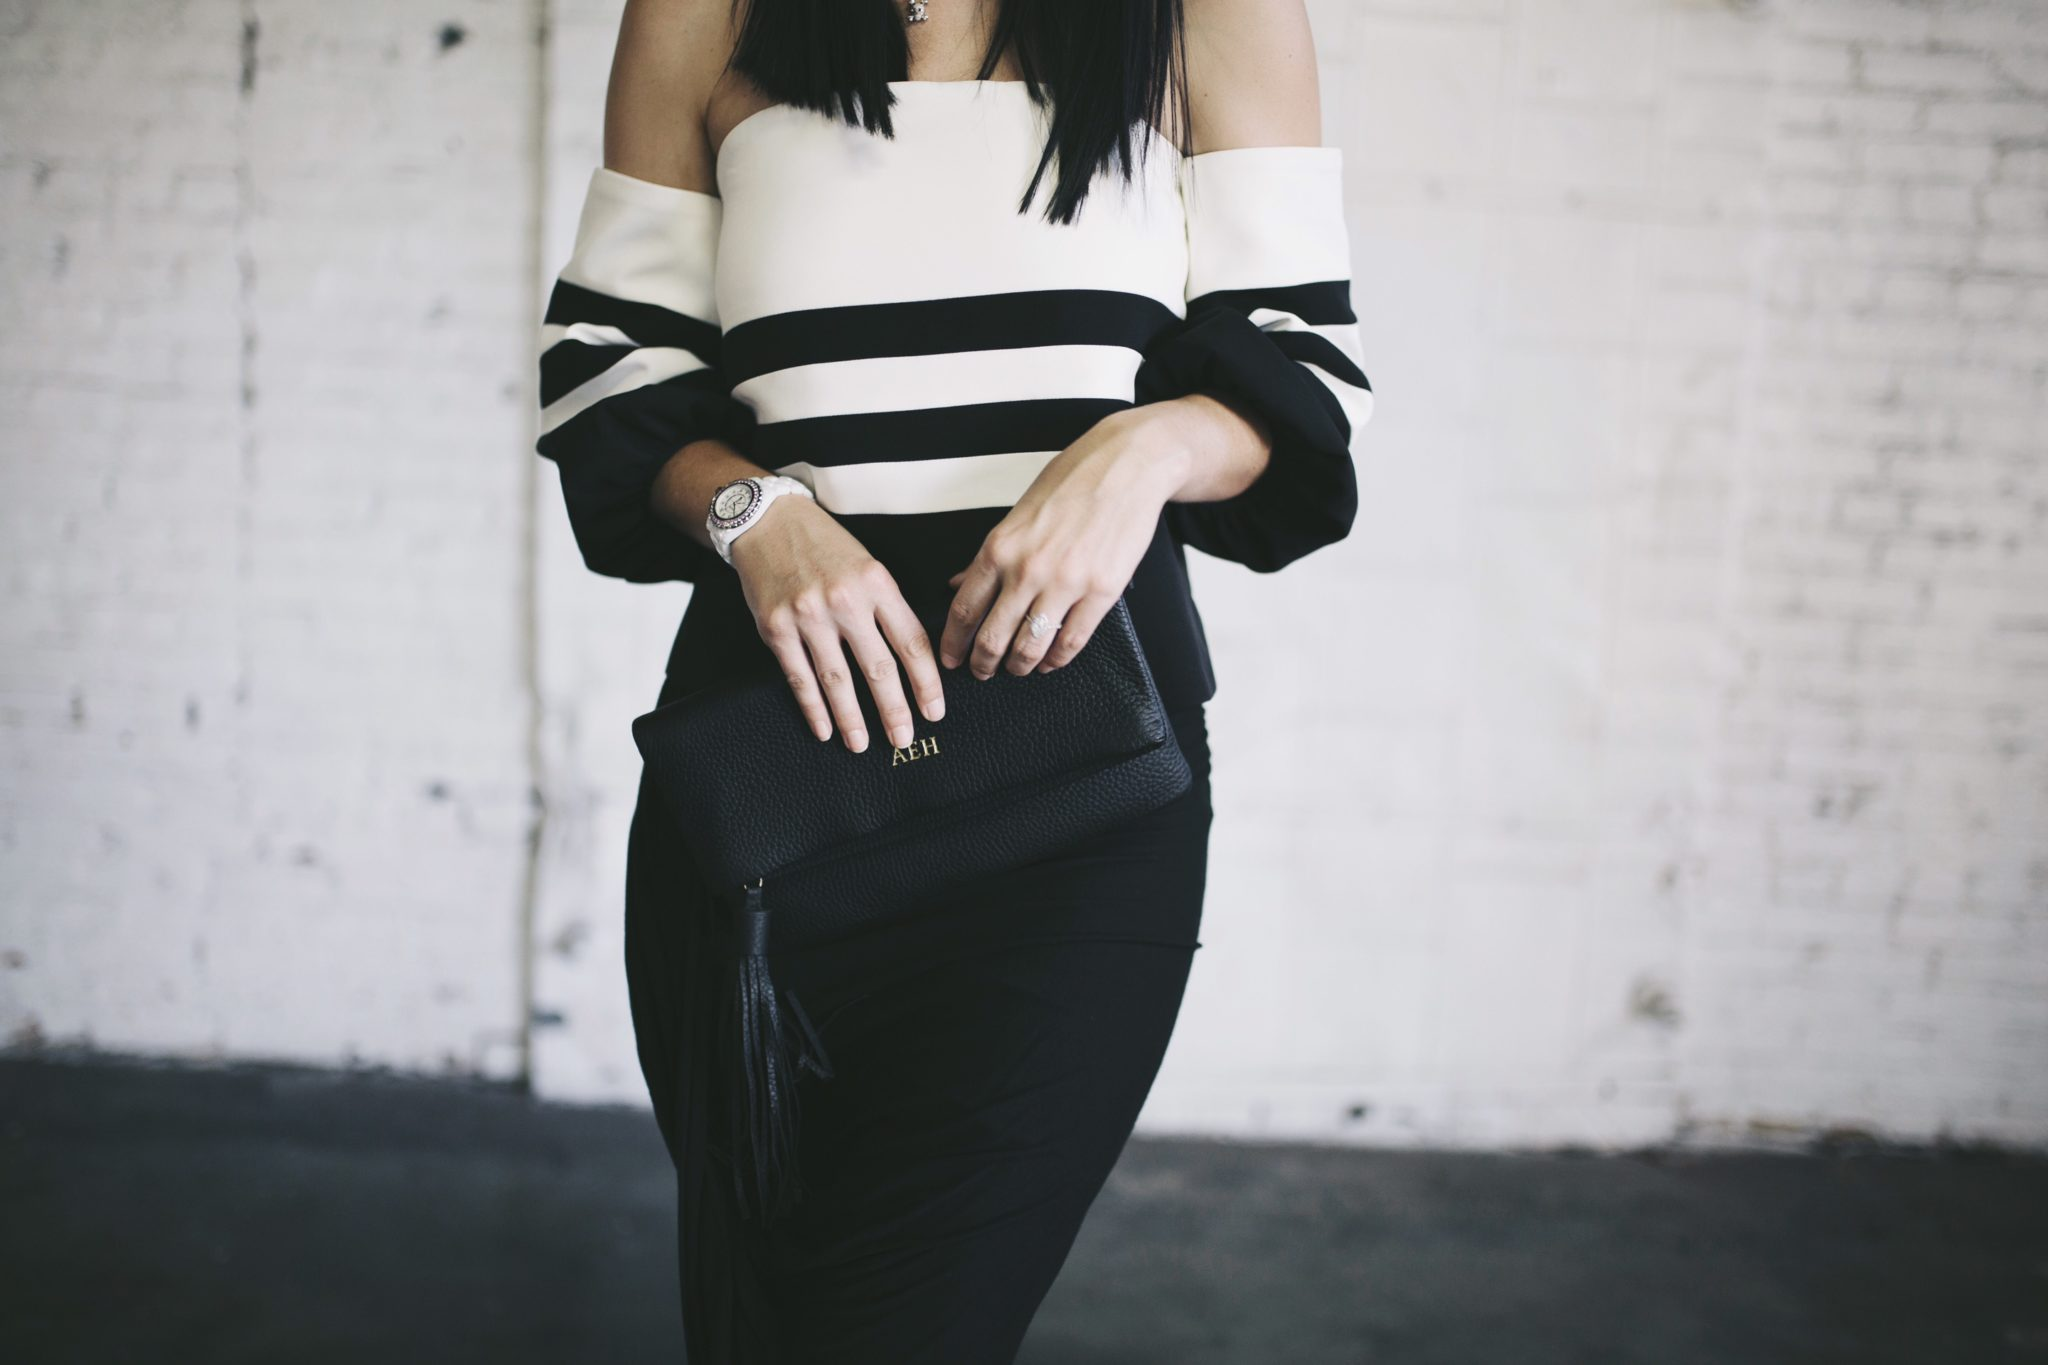 Off-the-Shoulder Striped Black and White Top and Black Skirt | summer fashion tips | summer outfit ideas | summer style tips | what to wear for summer | warm weather fashion | fashion for summer | style tips for summer | outfit ideas for summer || Dressed to Kill